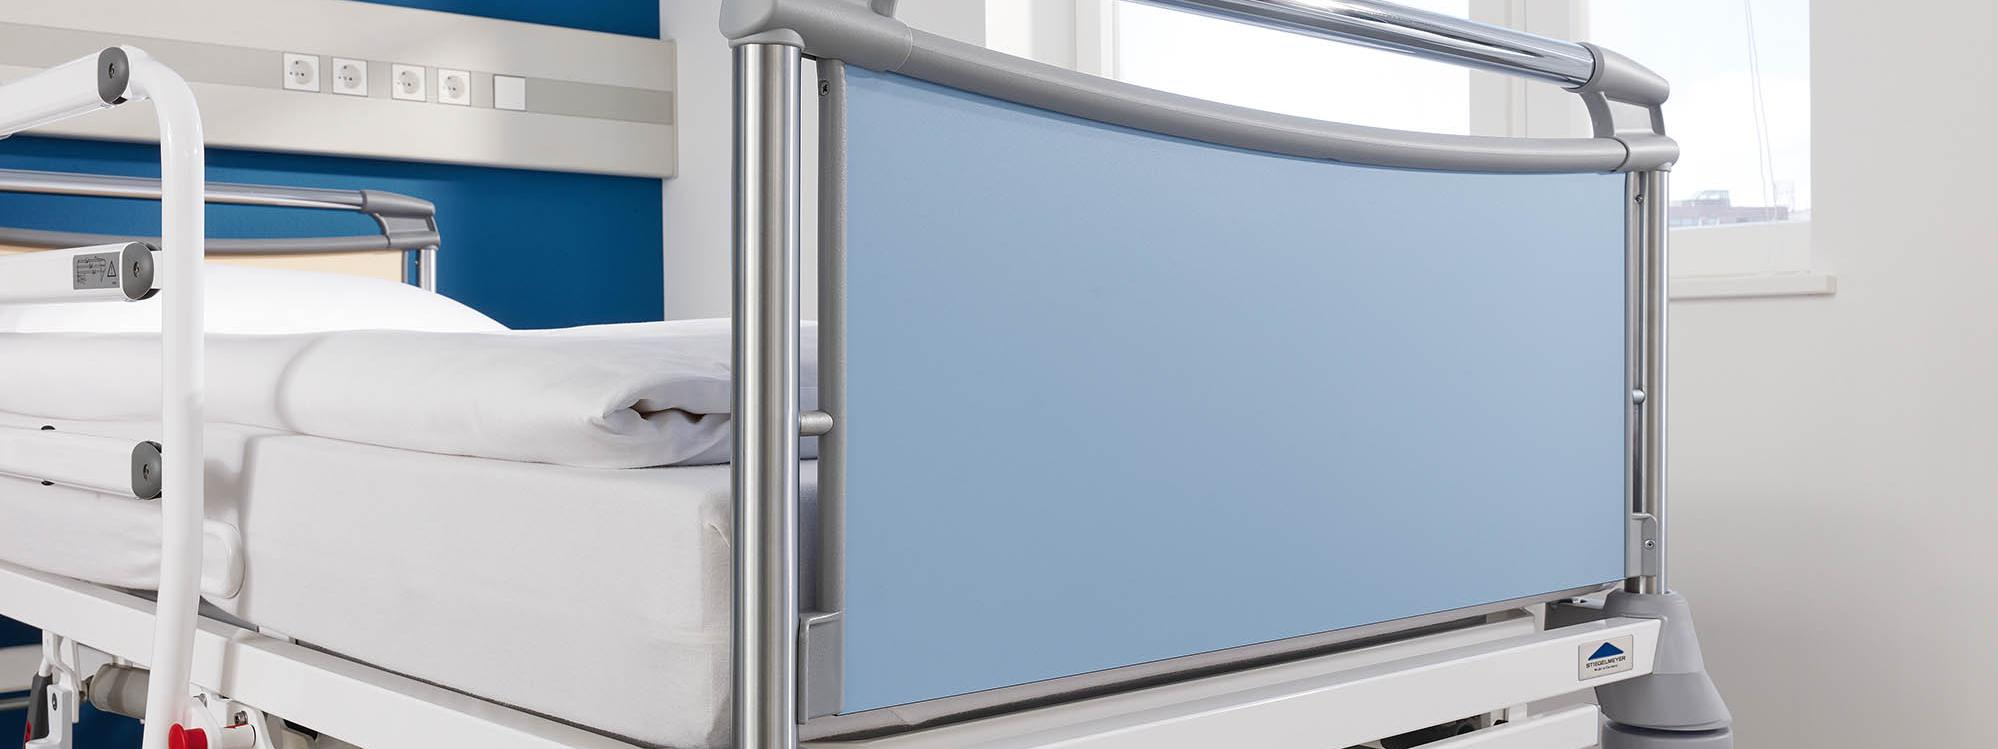 Valero head and footboard of the Deka hospital bed